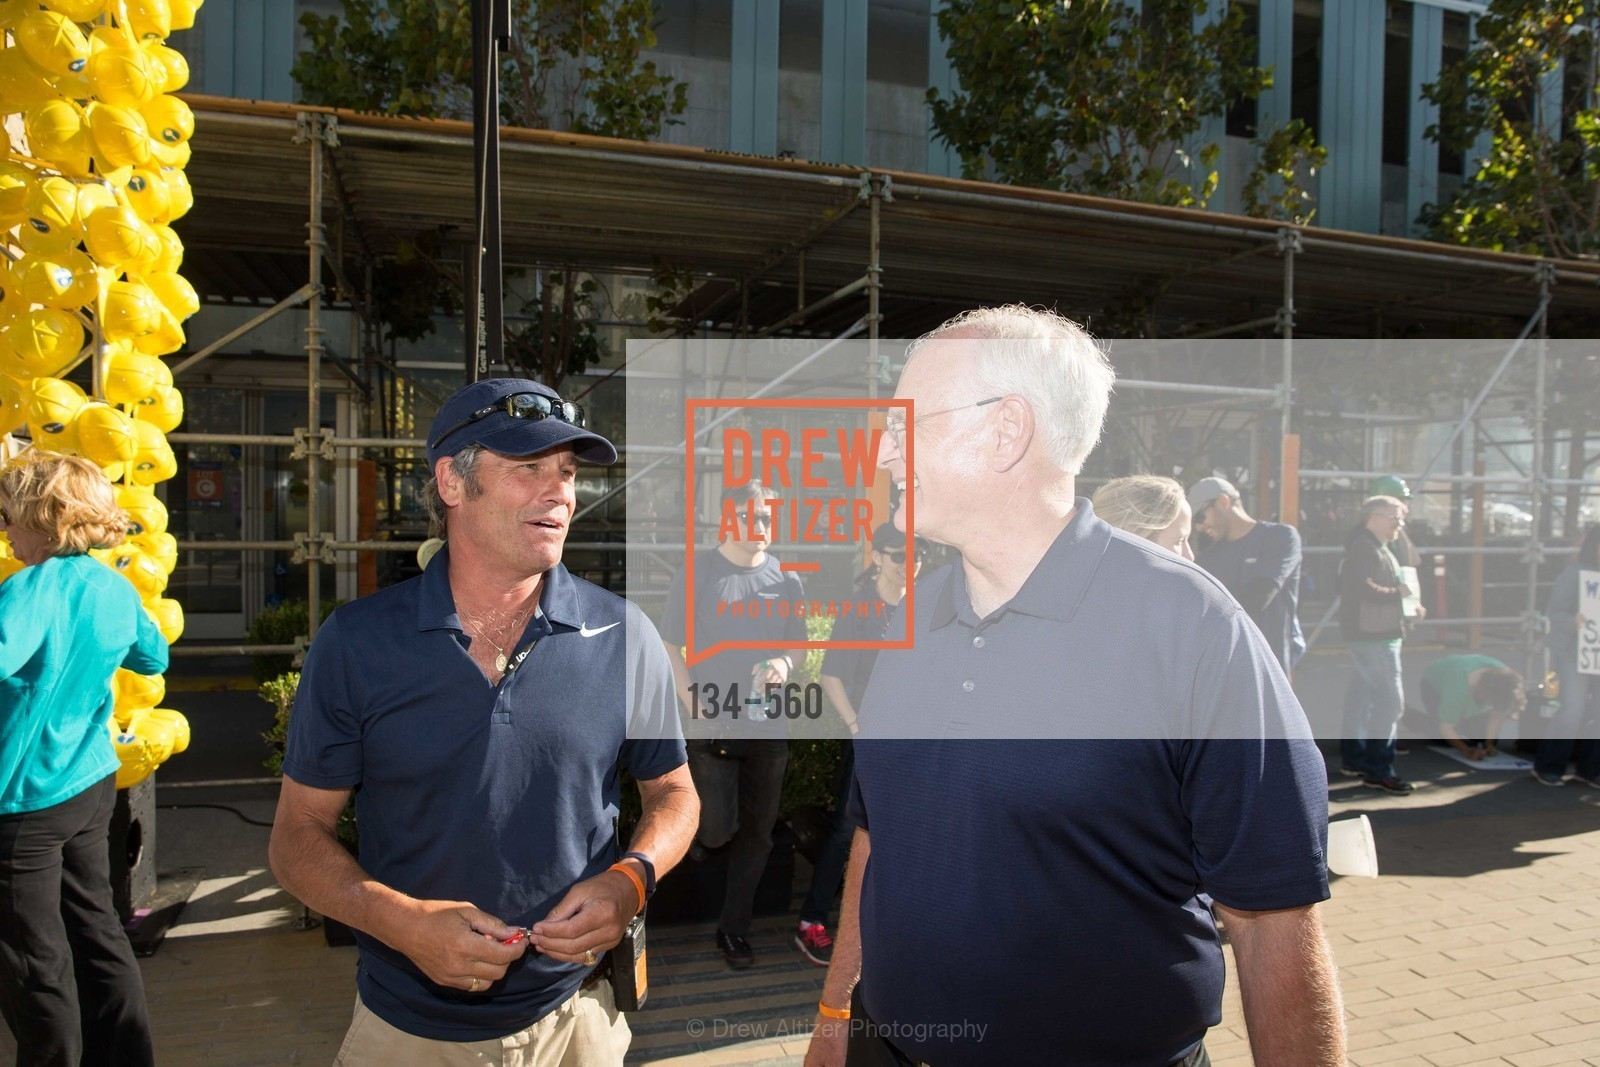 Peter Balestreri, Mark Laret, UCSF Medical Center HARD HAT WALK & LIGHTS ON FESTIVAL, US, September 6th, 2014,Drew Altizer, Drew Altizer Photography, full-service agency, private events, San Francisco photographer, photographer california